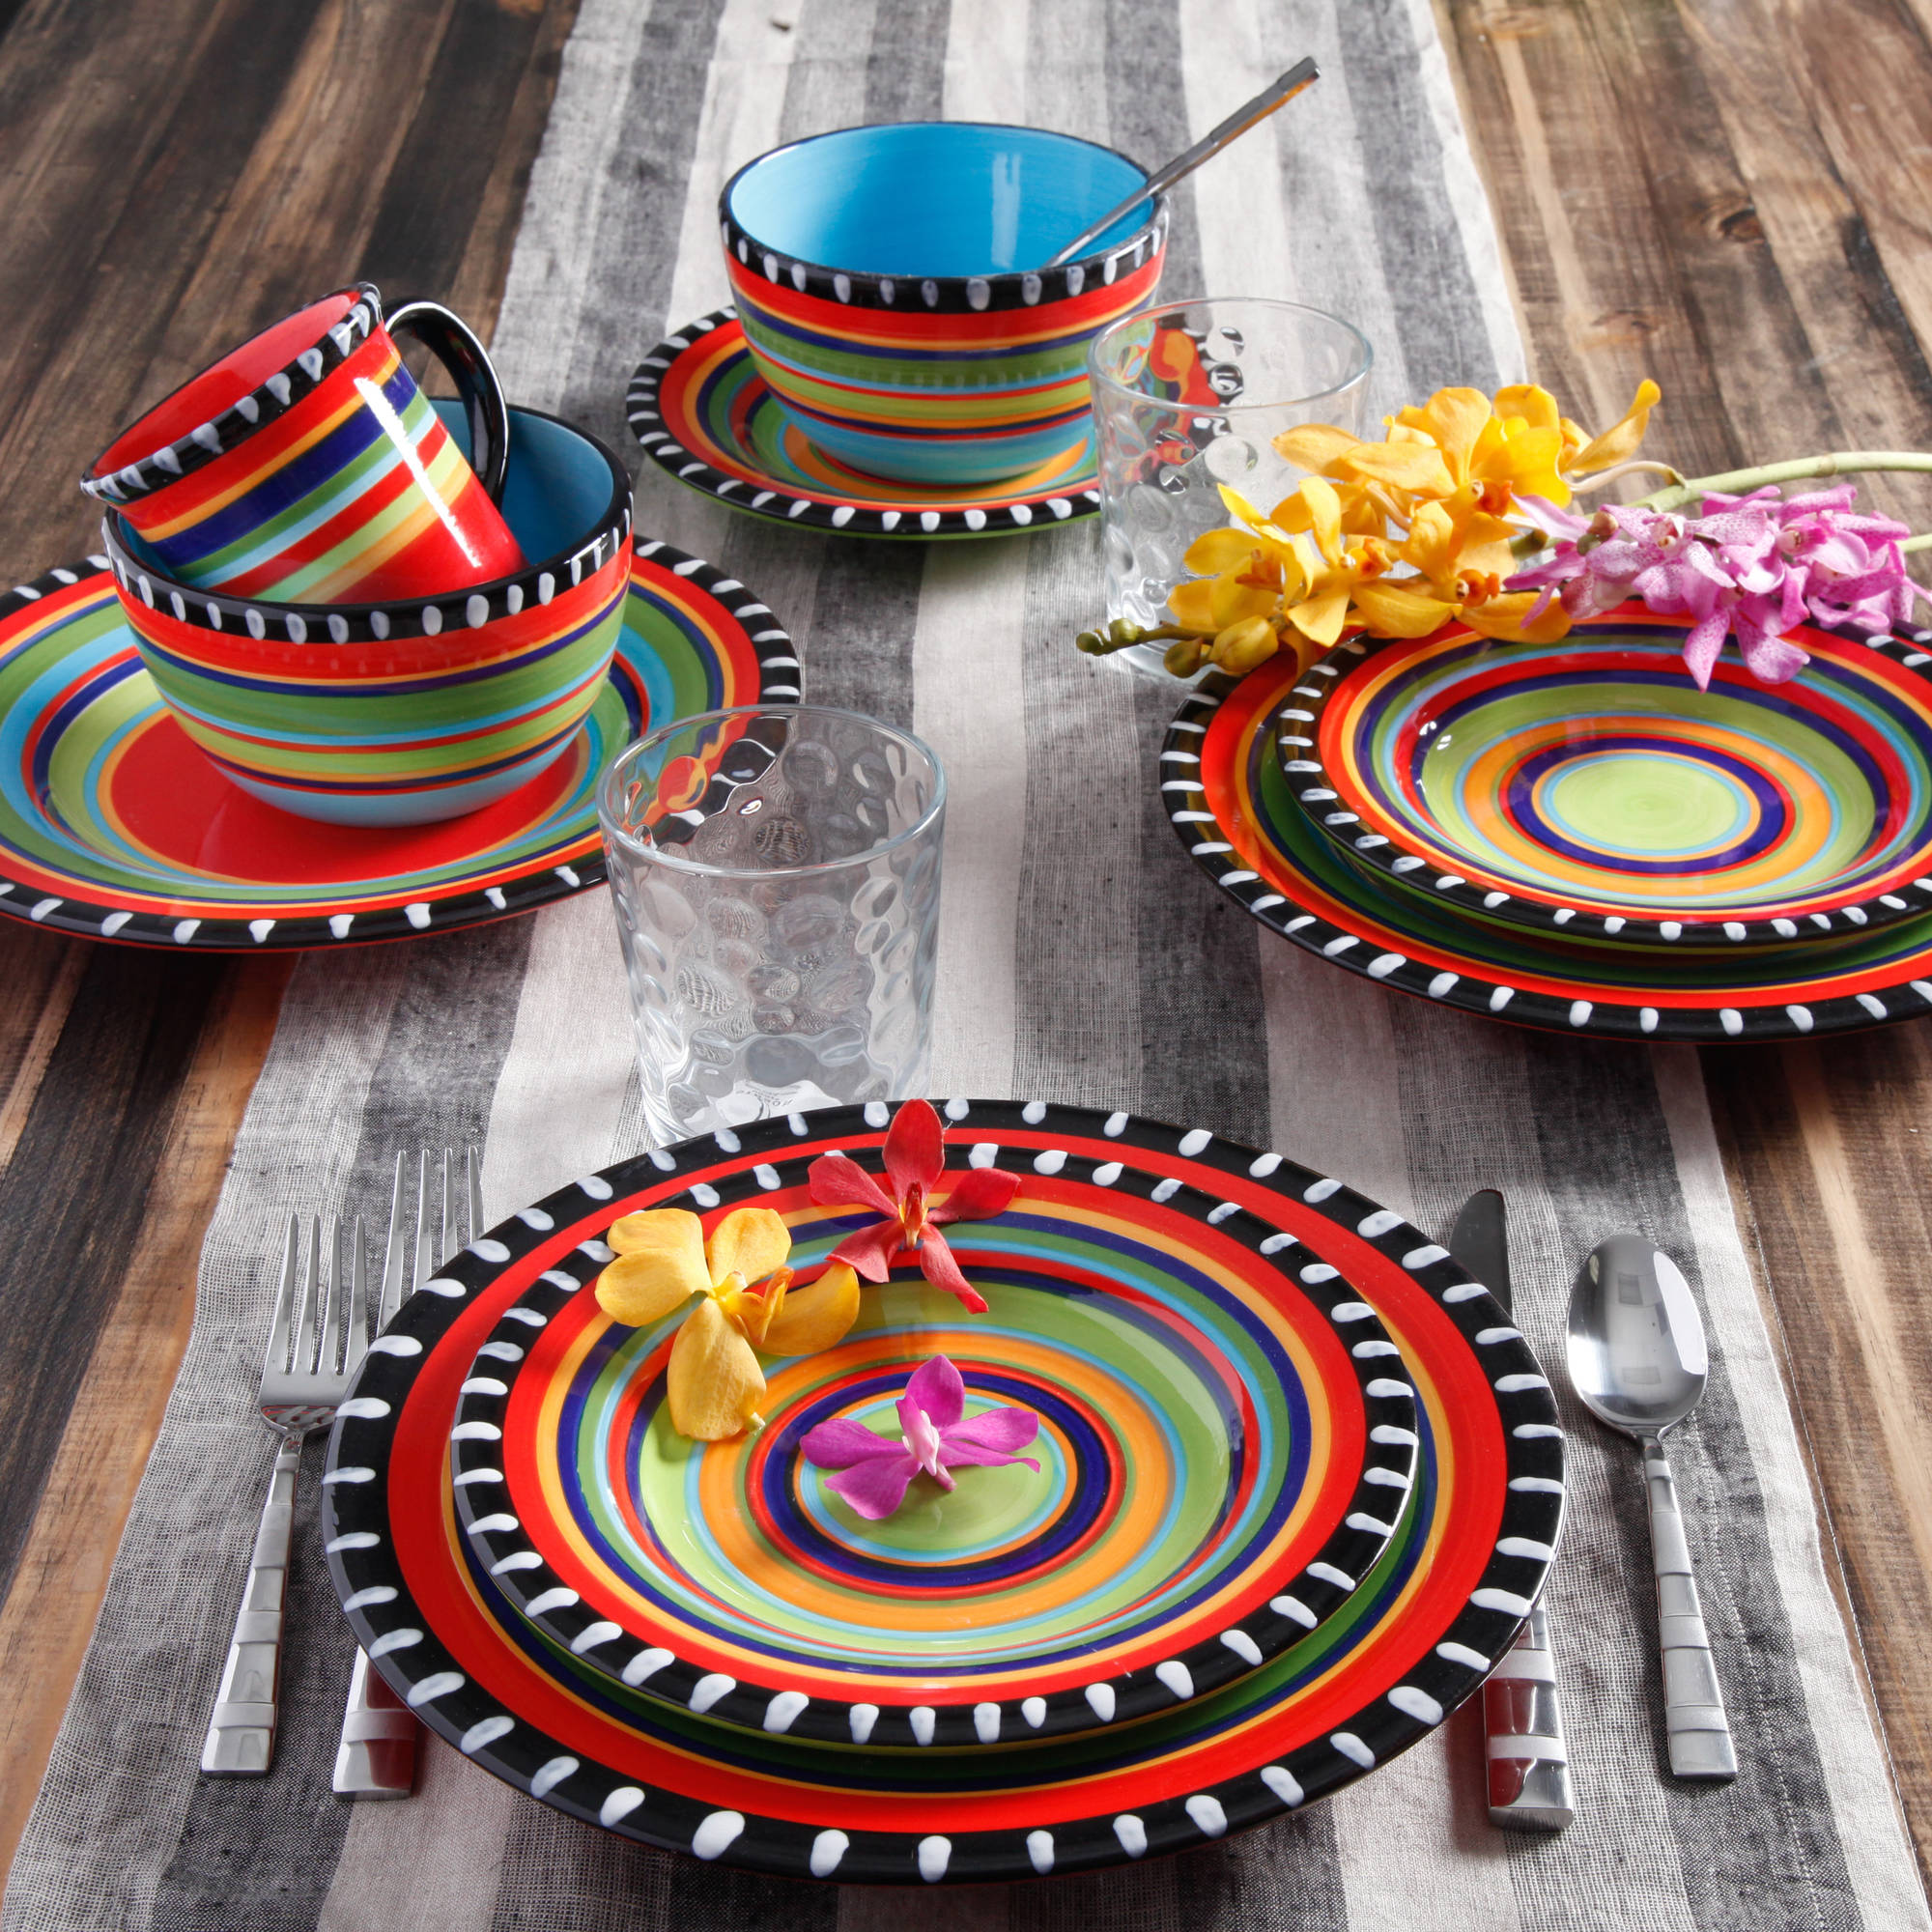 Gibson Home Pueblo Springs Handpainted 16-Piece Dinnerware Set, Multi-Color